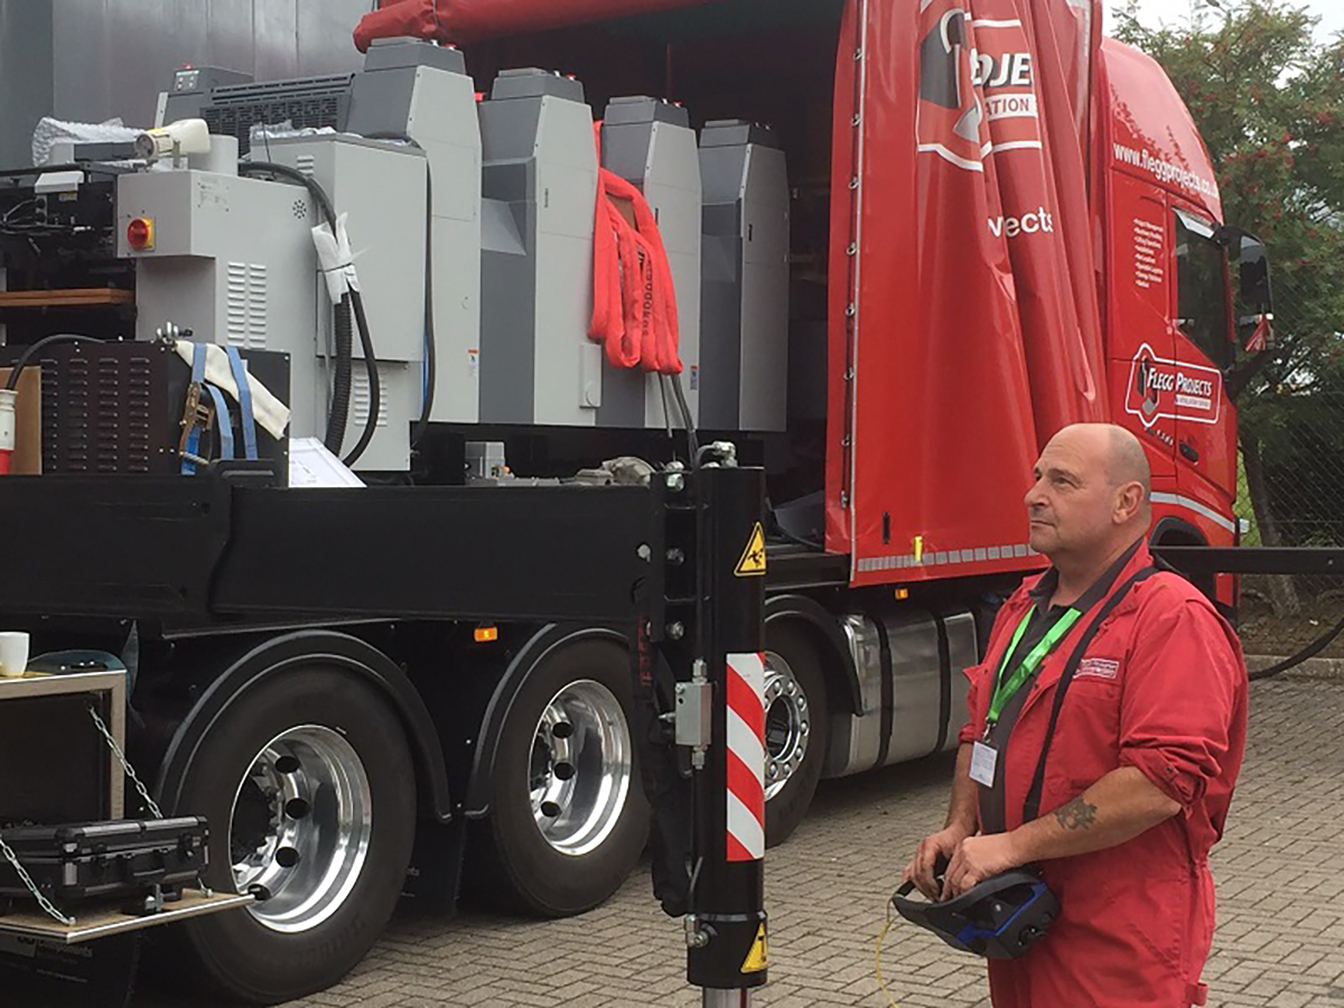 Operator moving equipment from lorry